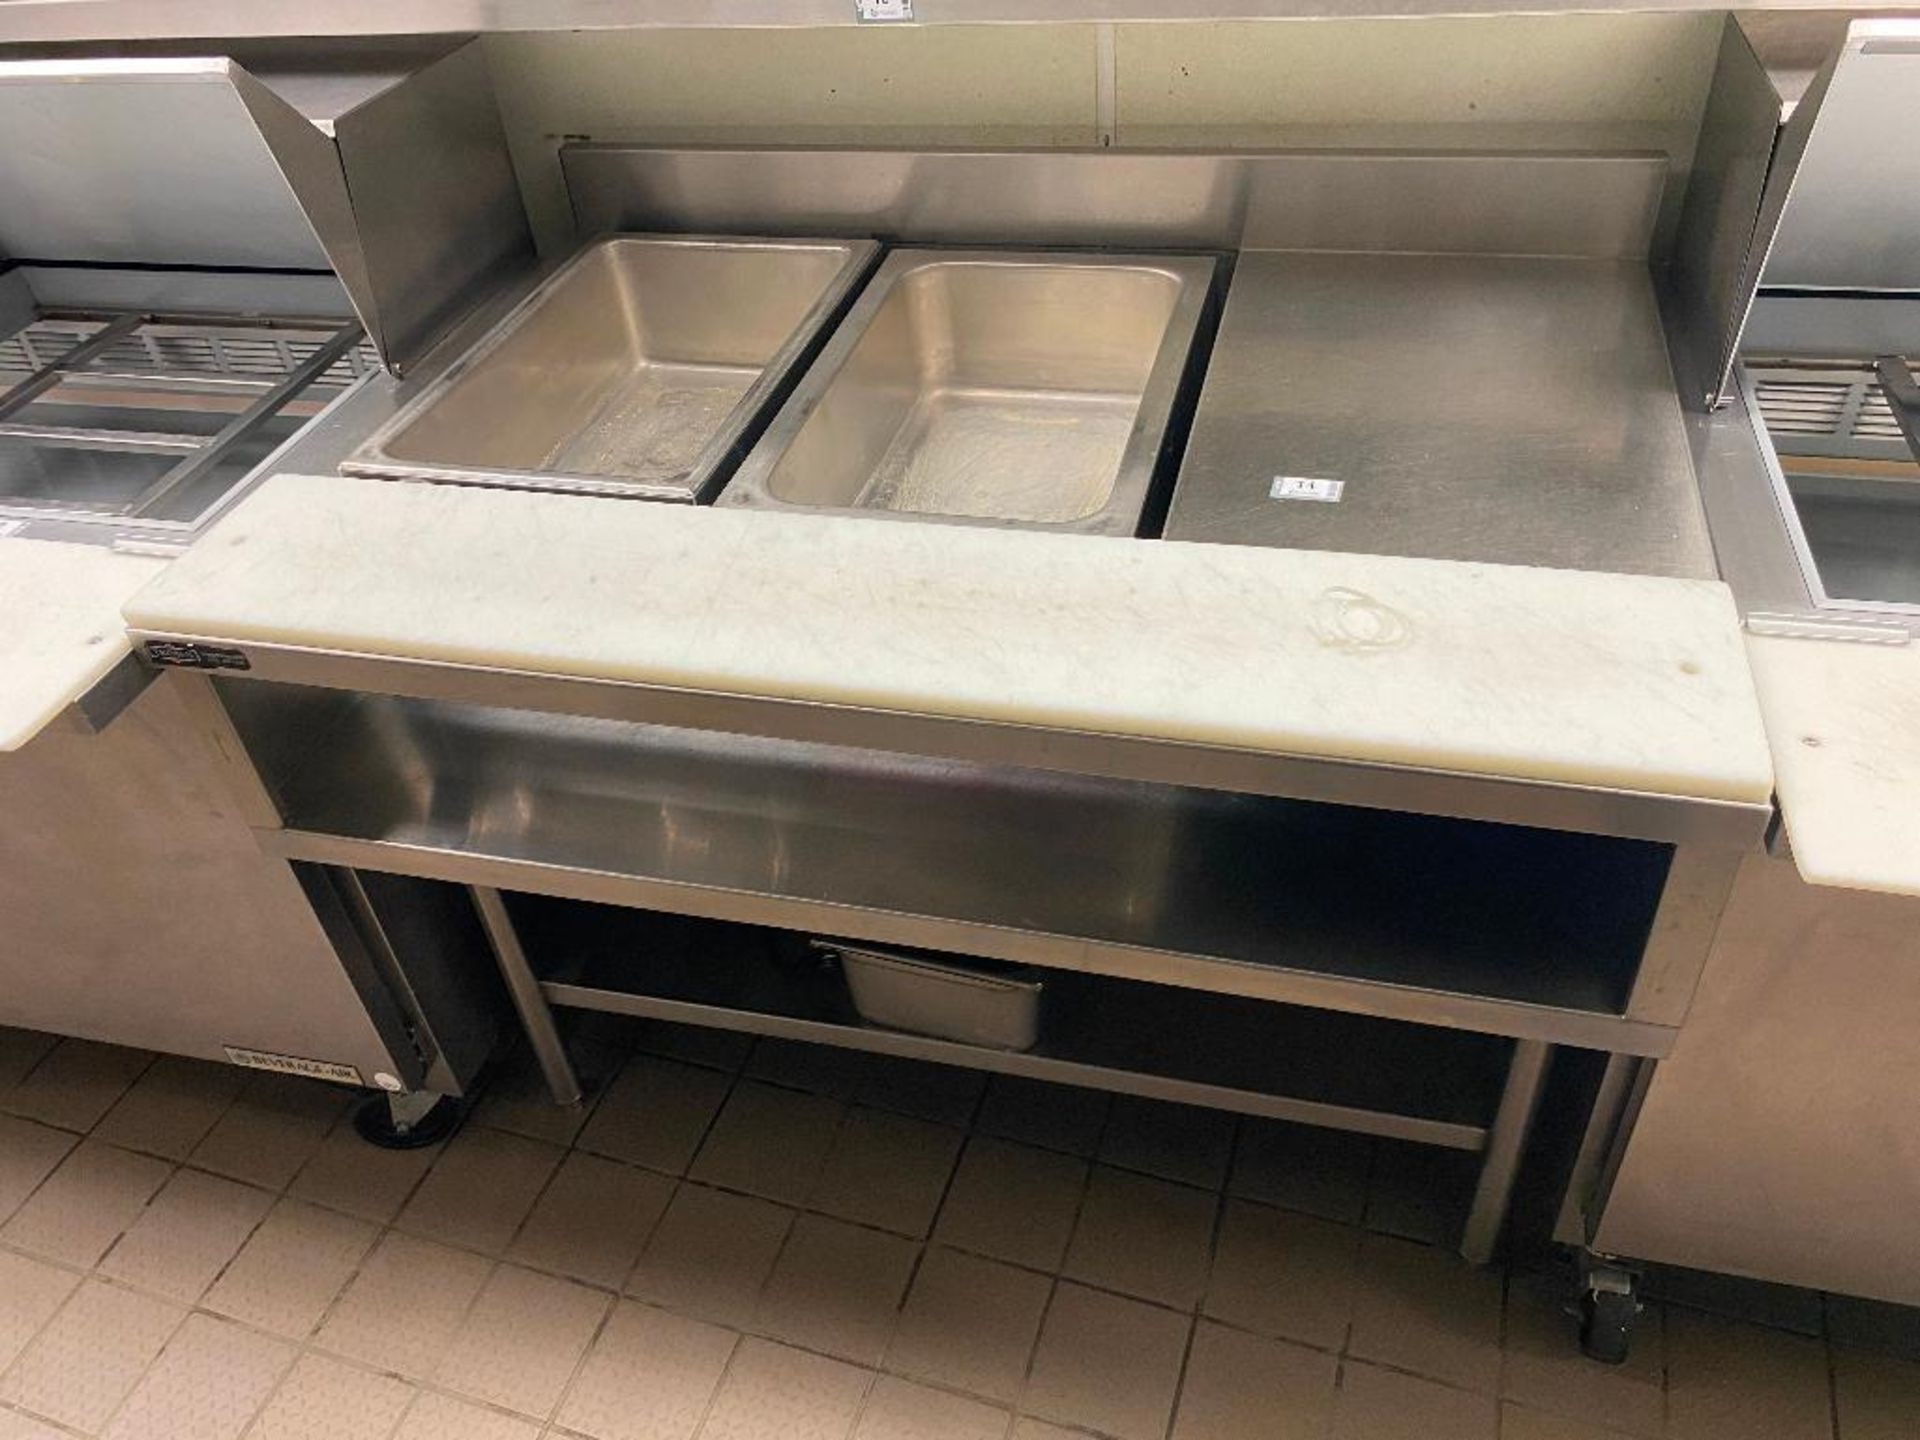 TRIMEN CUSTOM STAINLESS STEEL TABLE WITH 2 FULL SIZE FOOD WARMERS - Image 2 of 6